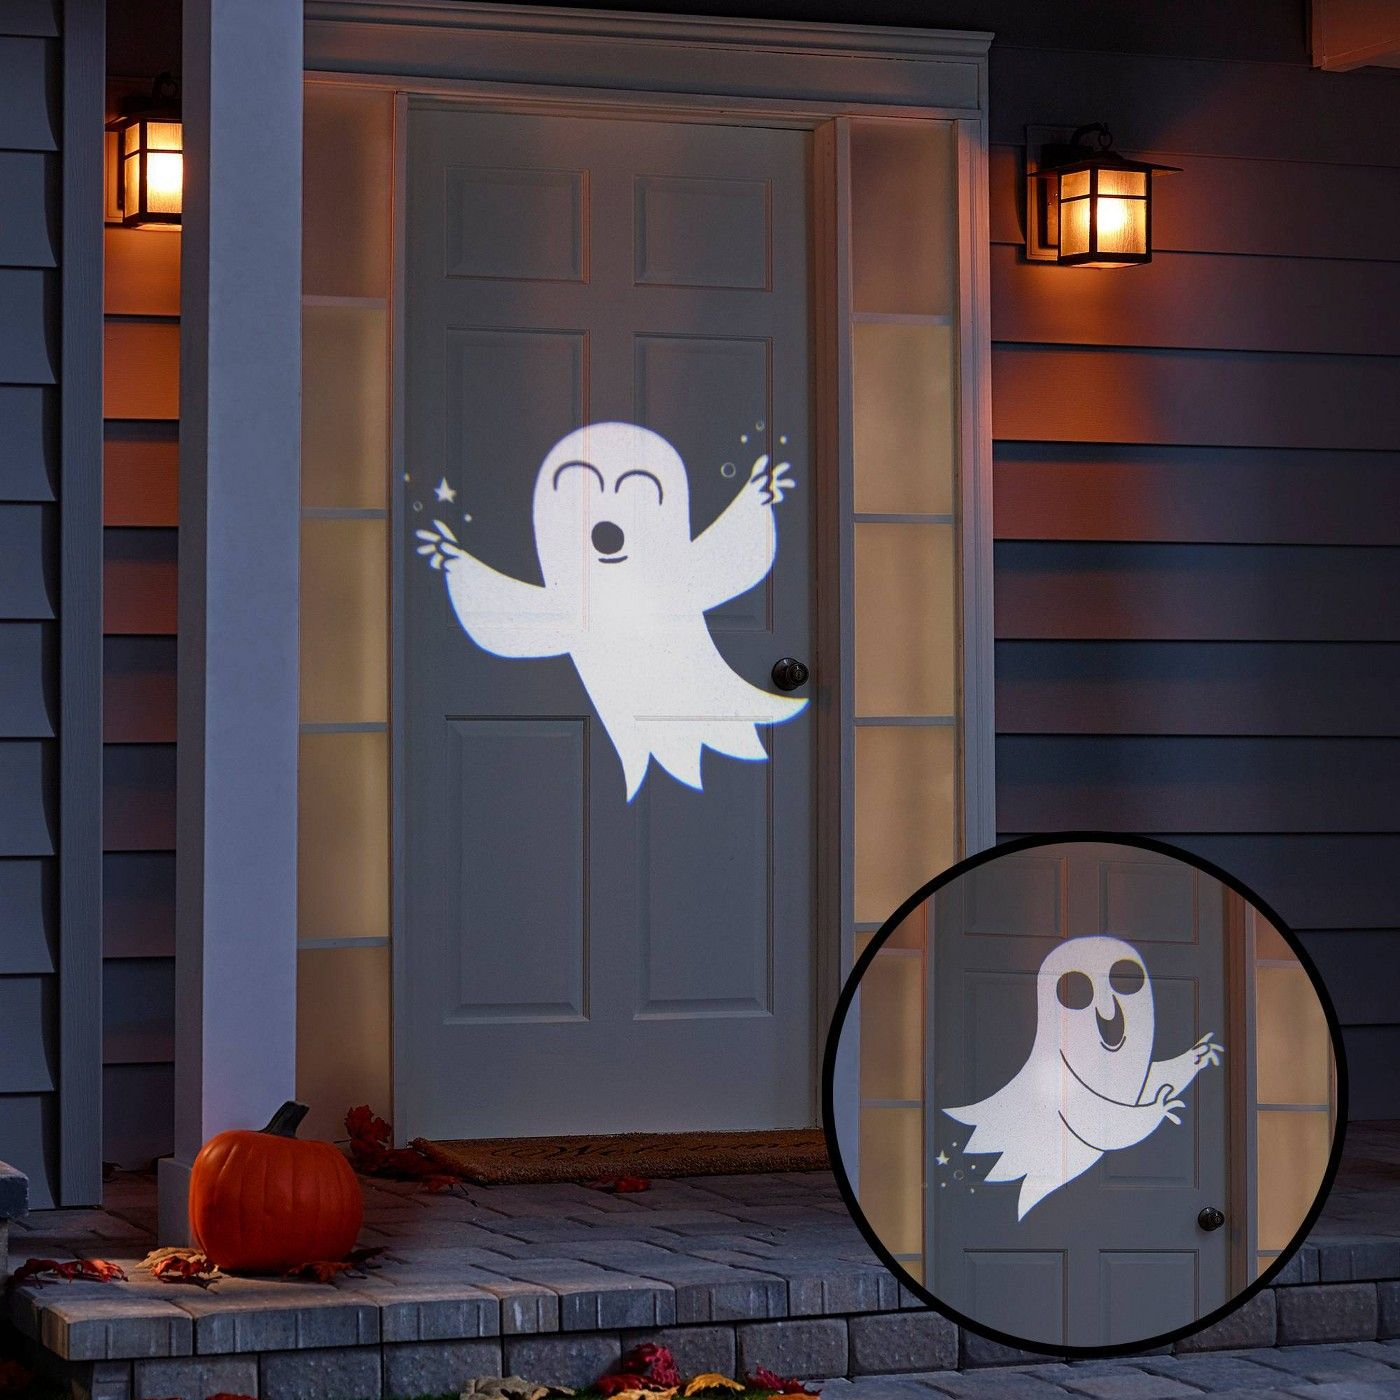 Philips Animated White Dancing Ghosts LED Halloween